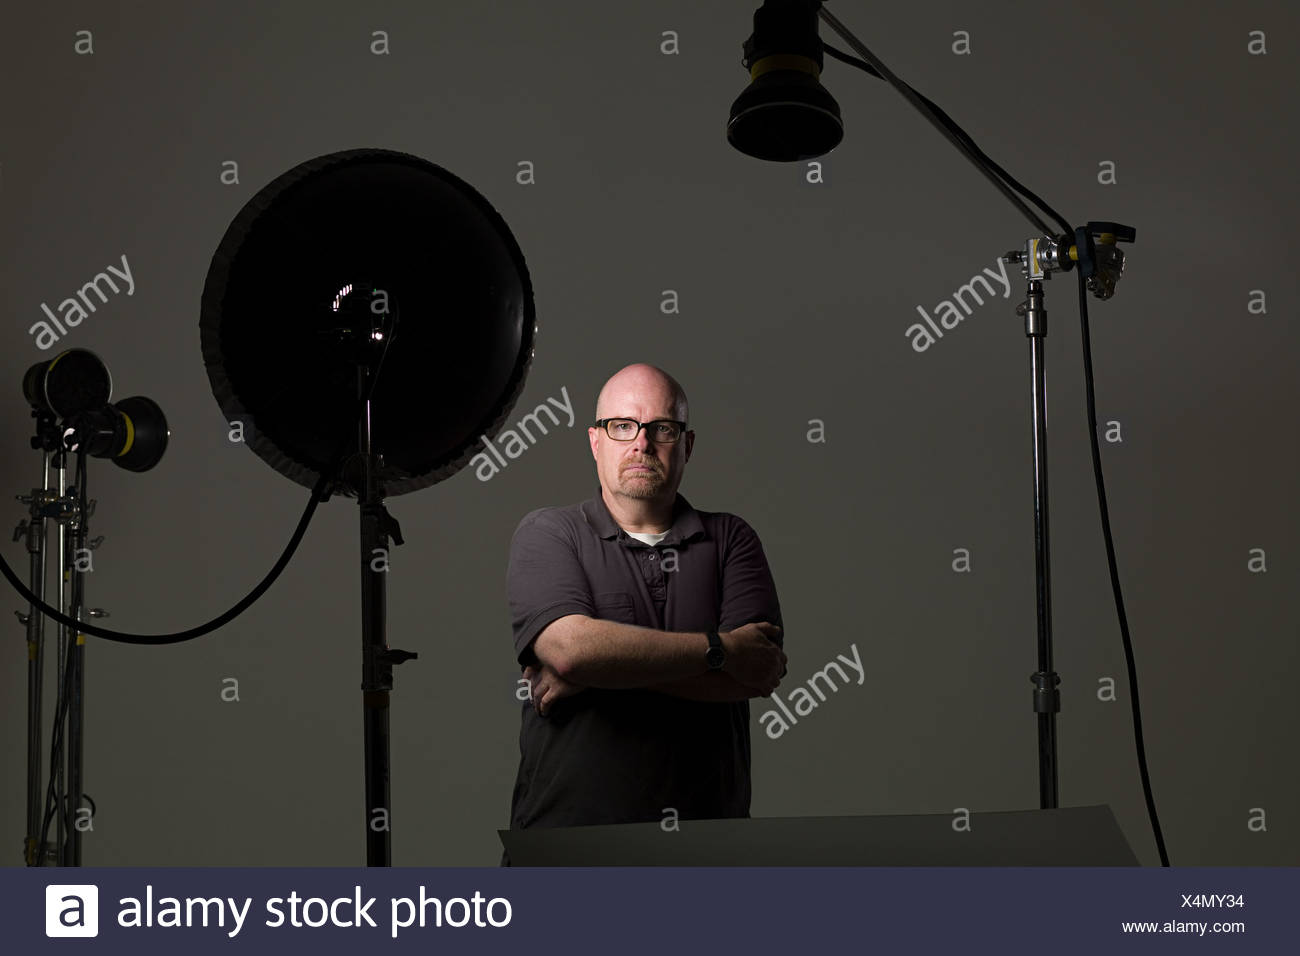 Portrait of a man next to photographic equipment - Stock Image